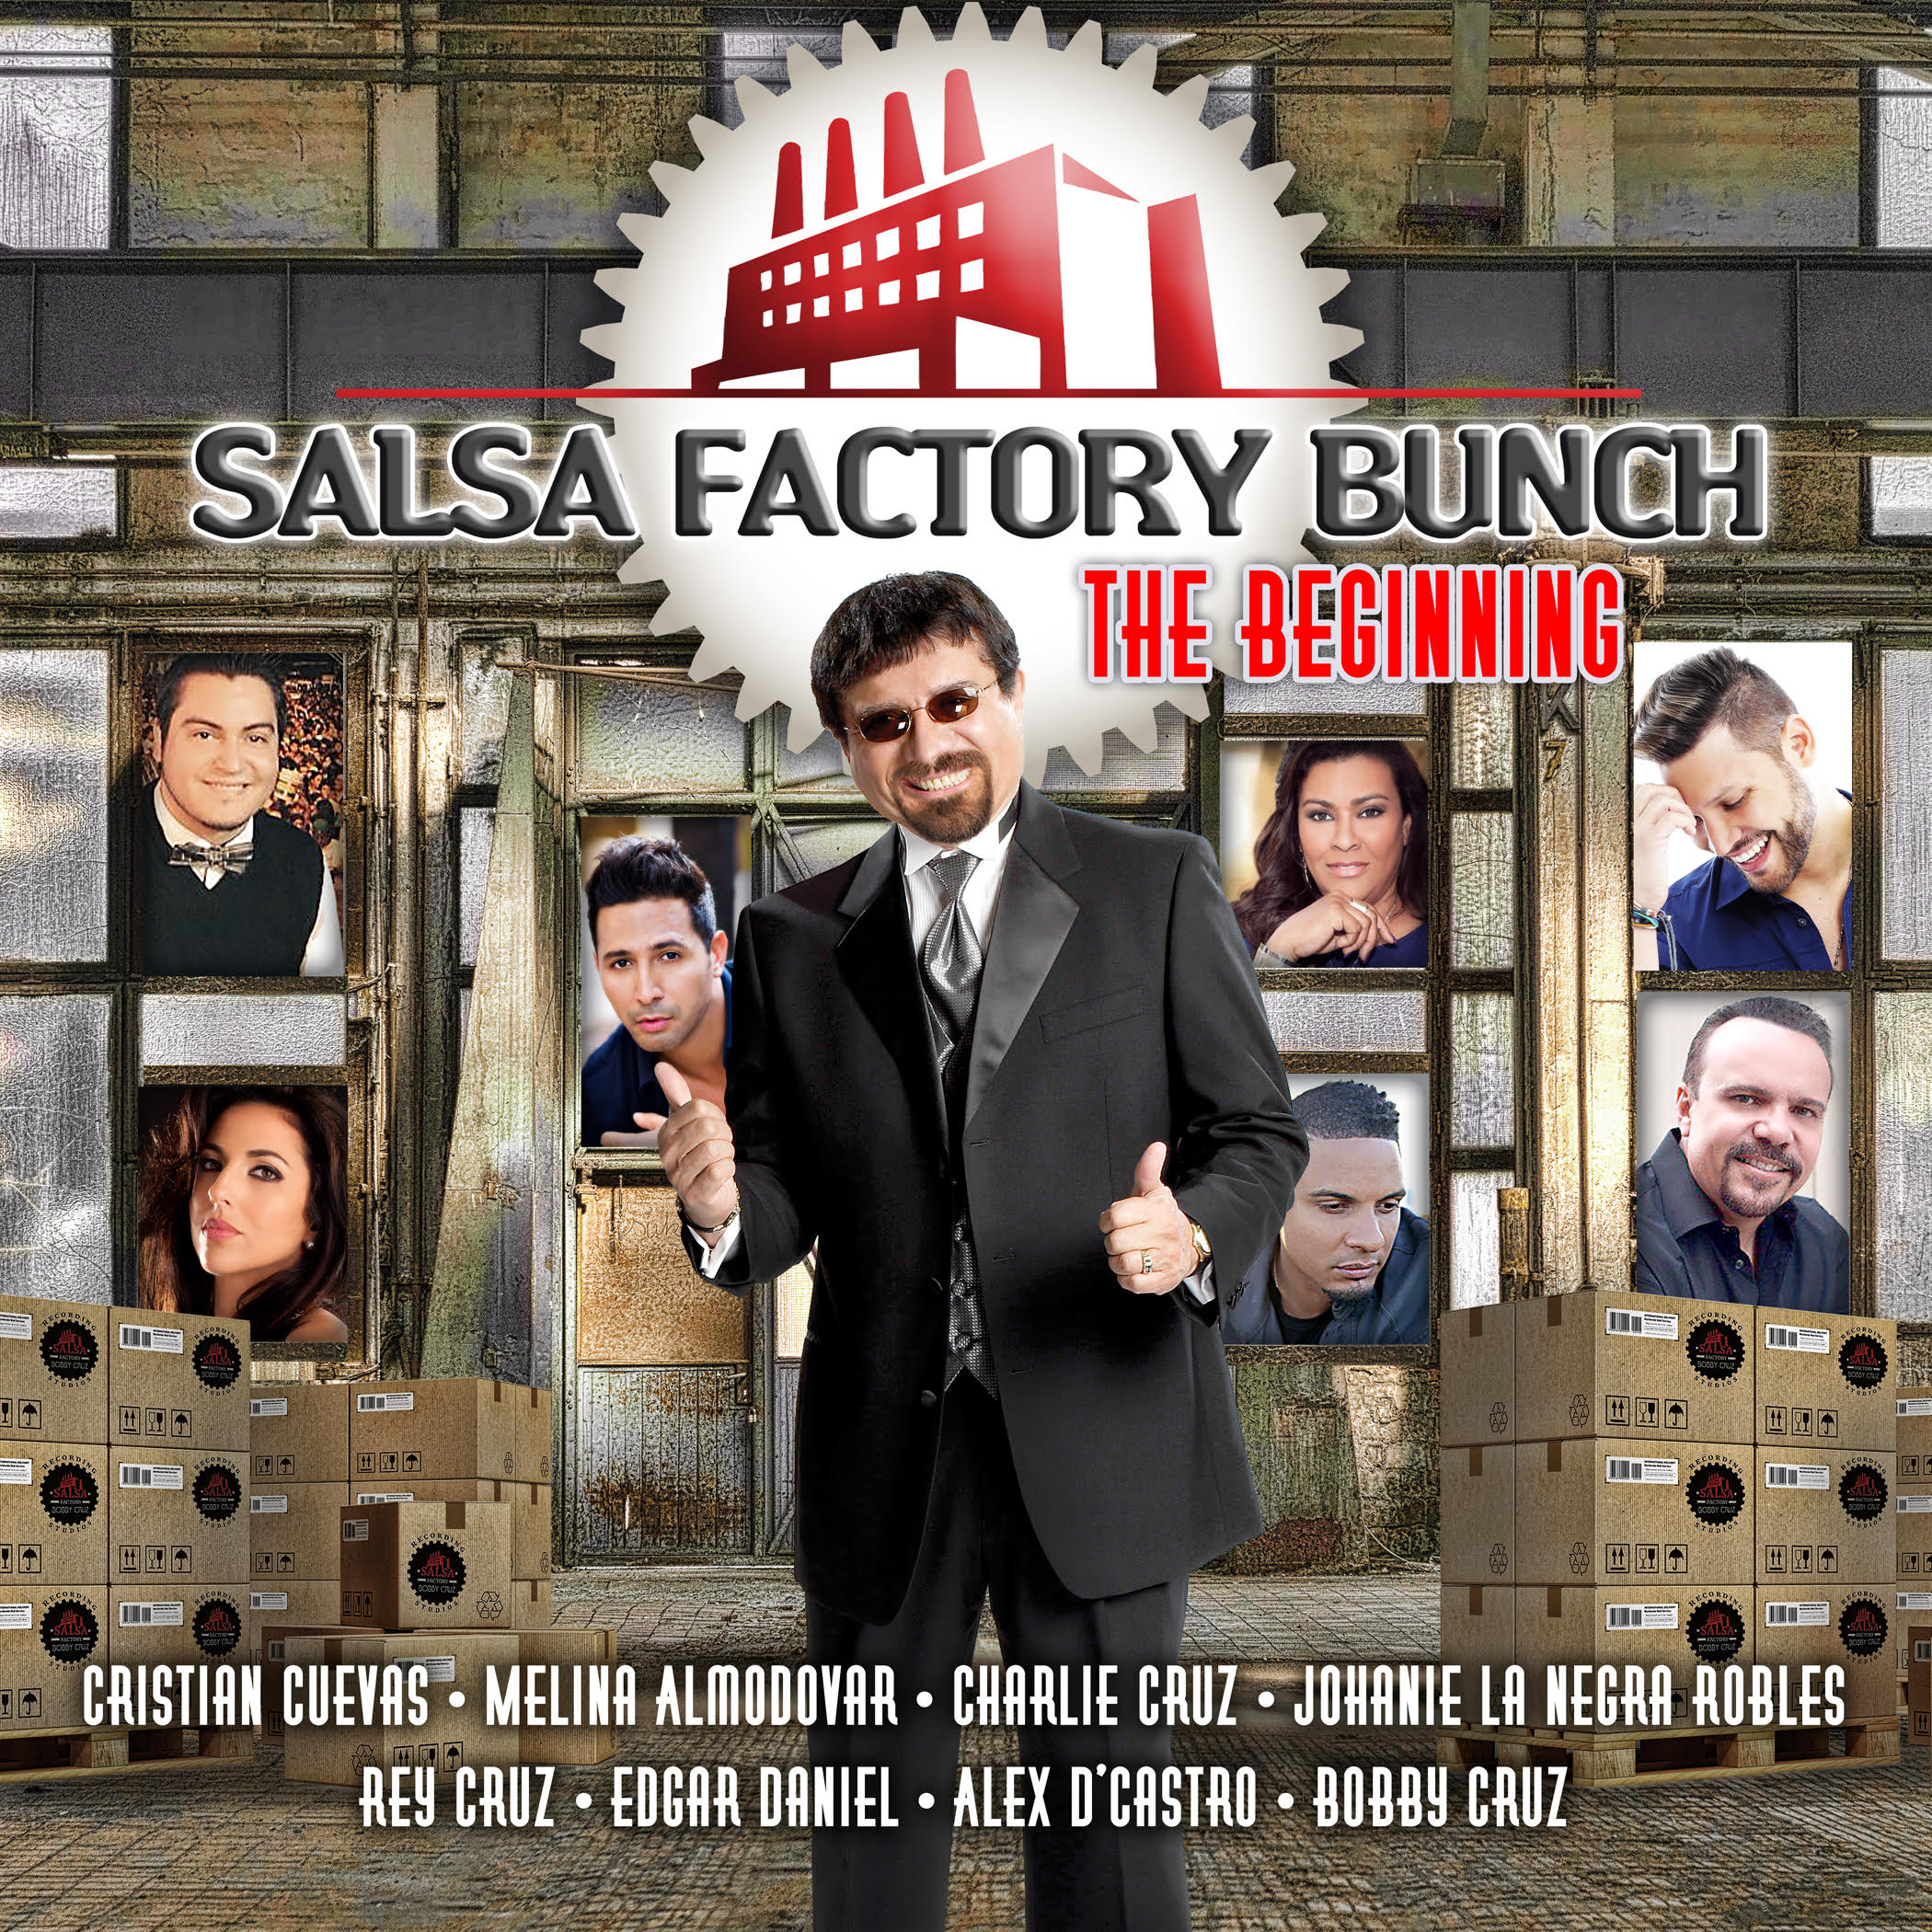 Salsa Factory Bunch: The Beginning